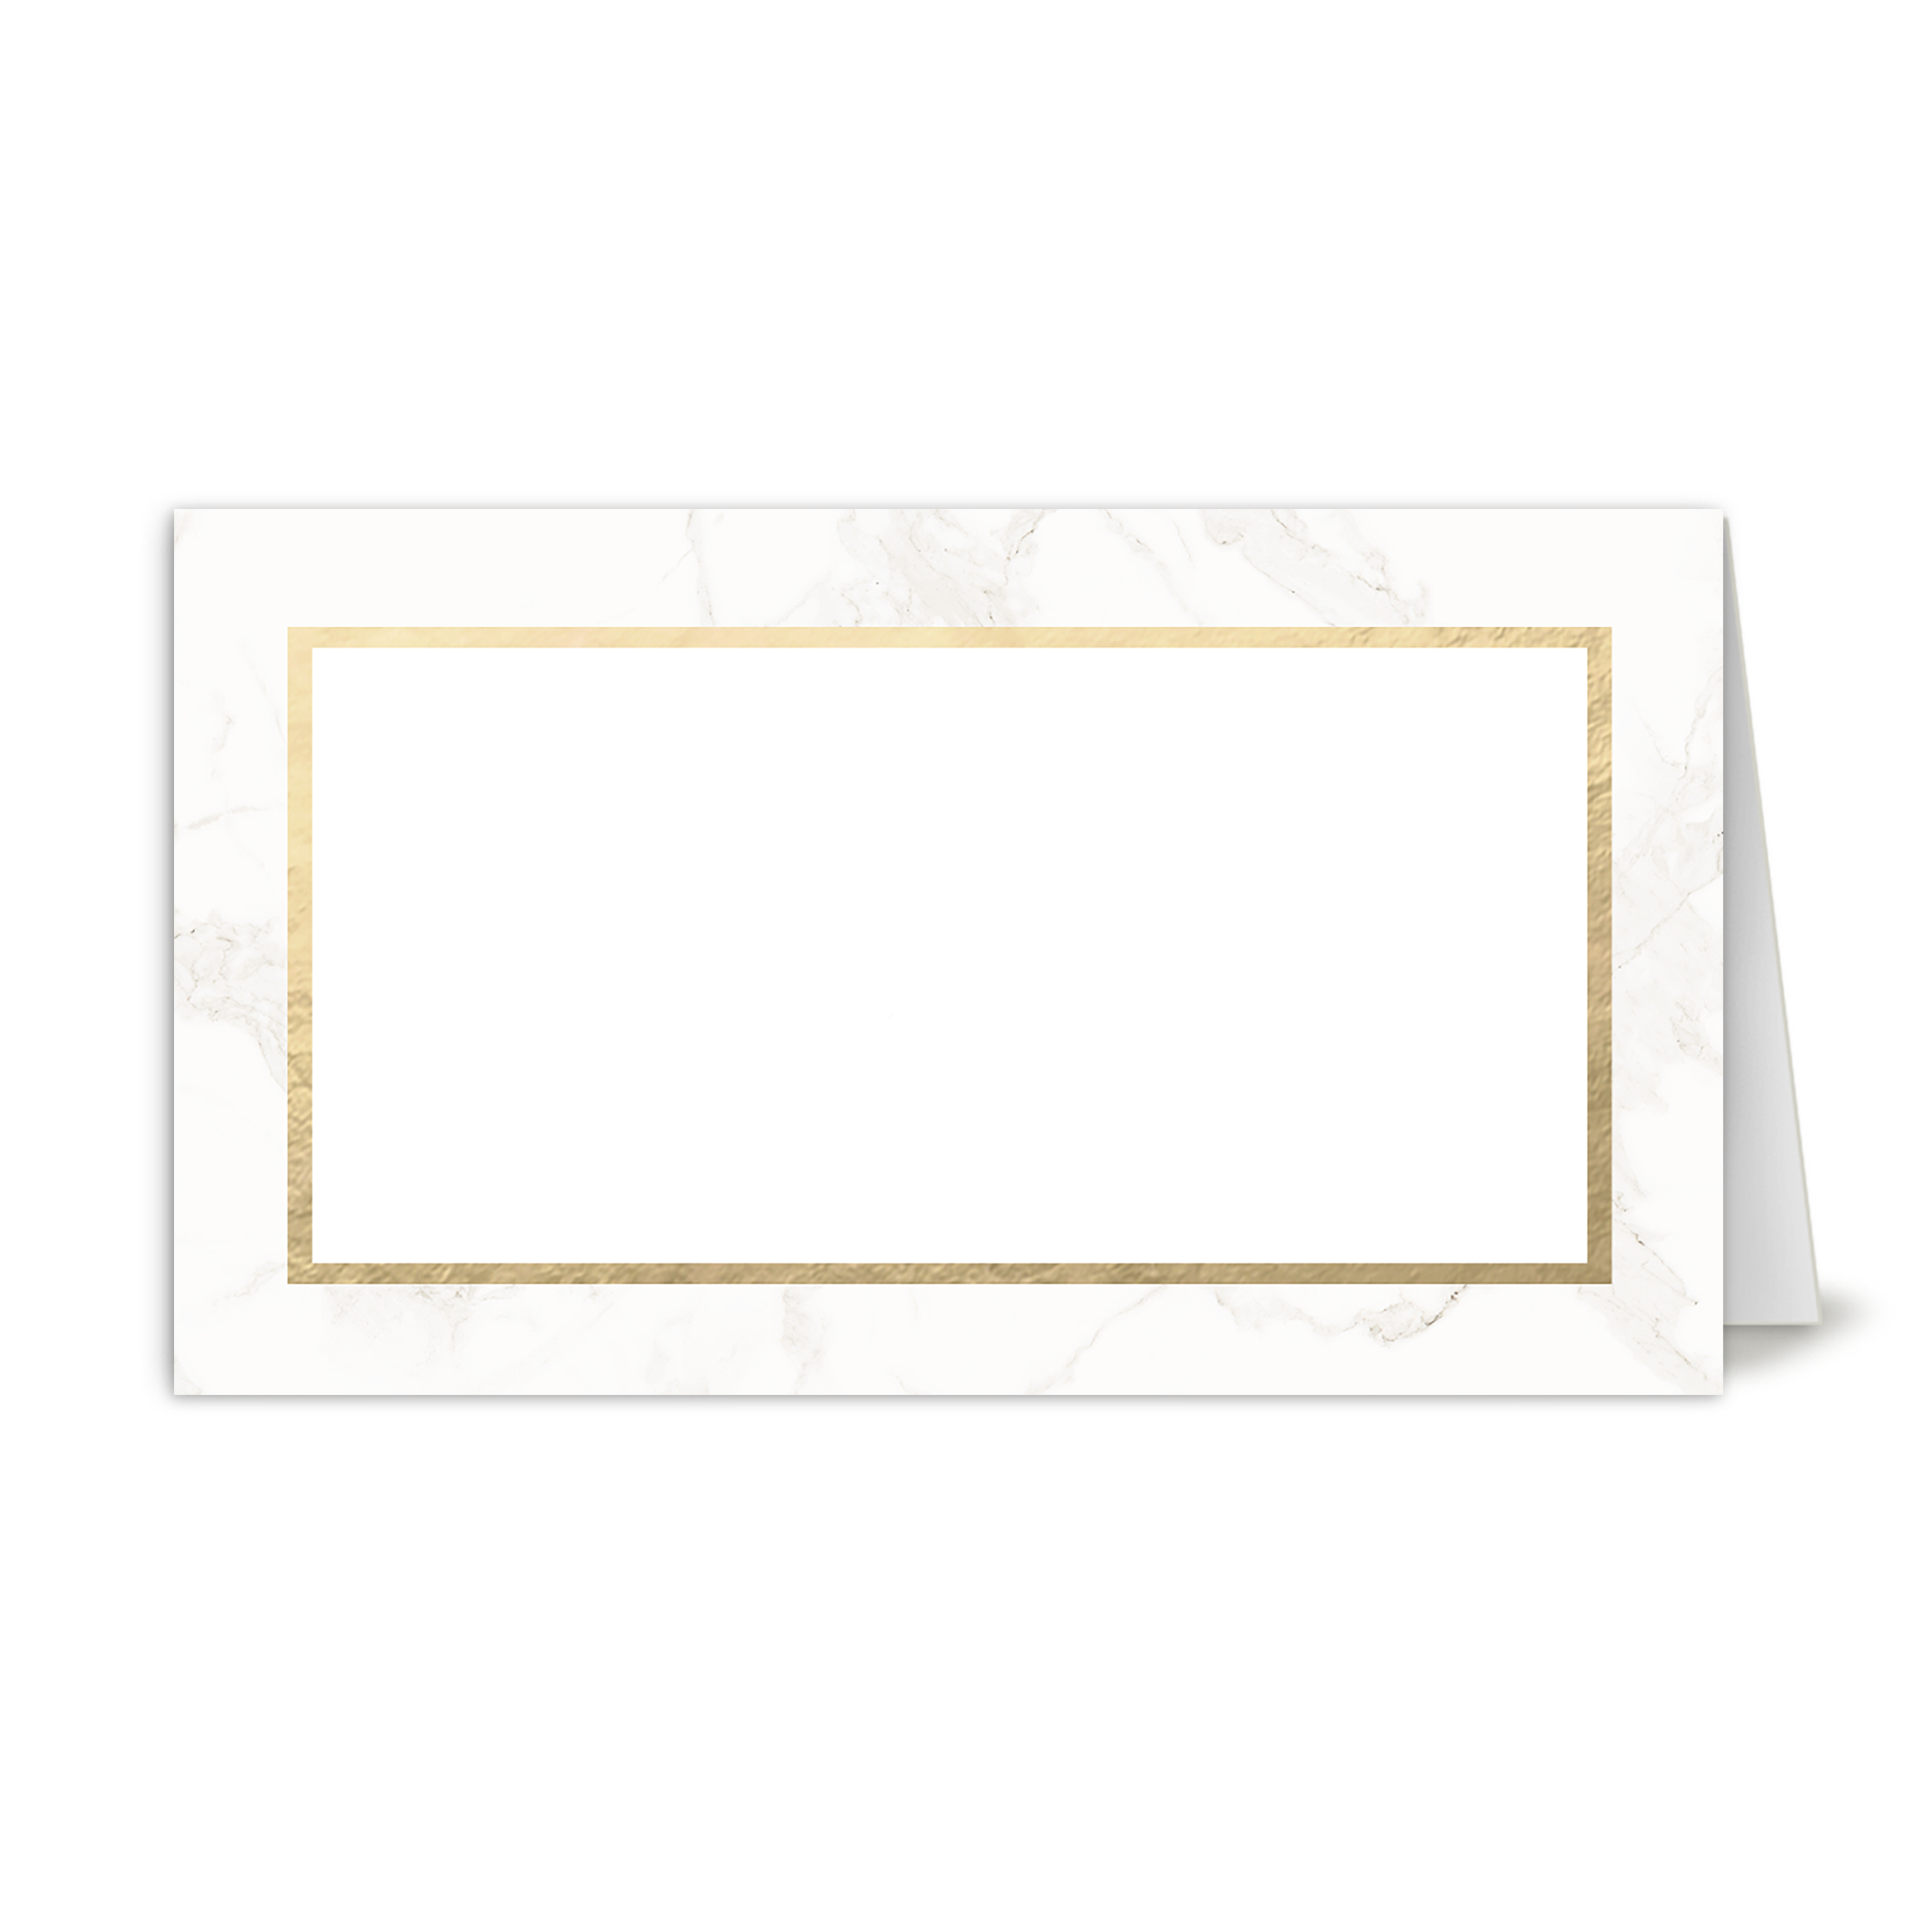 Personalized Wedding Place Card - Classic Marble - 3.5 x 2 Folded